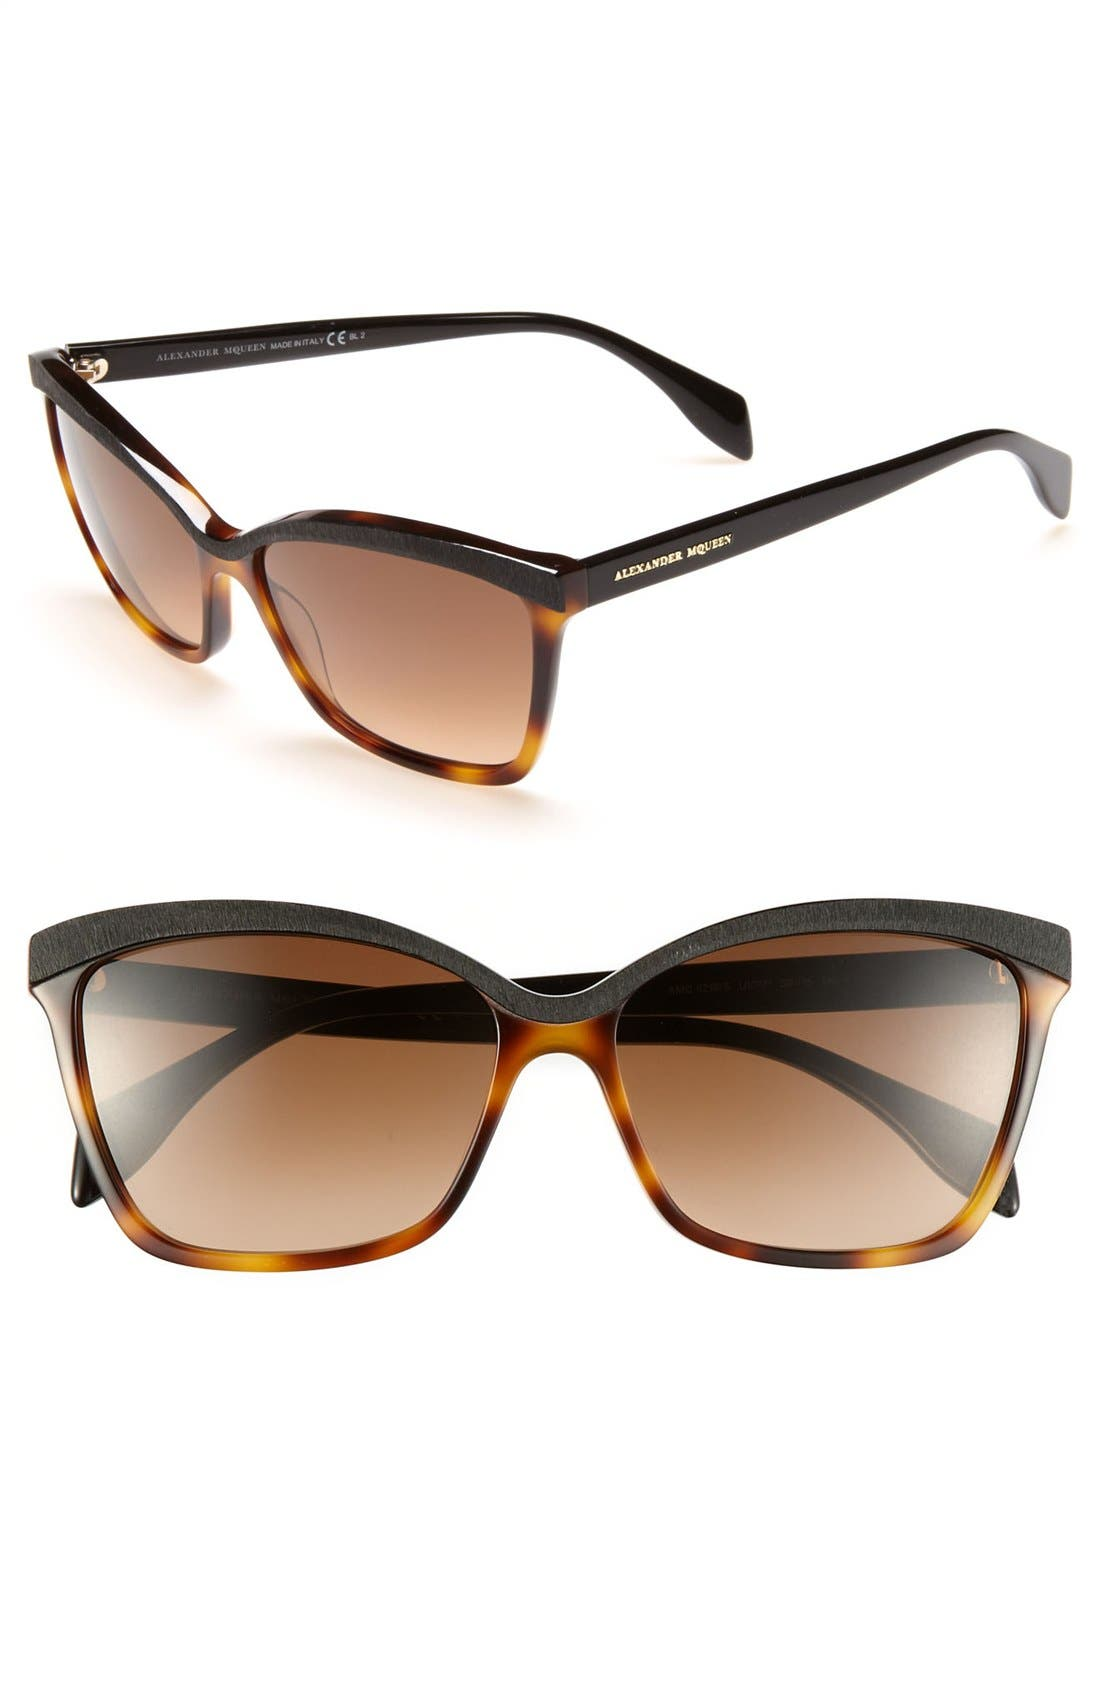 Main Image - Alexander McQueen 58mm 'Retro' Sunglasses